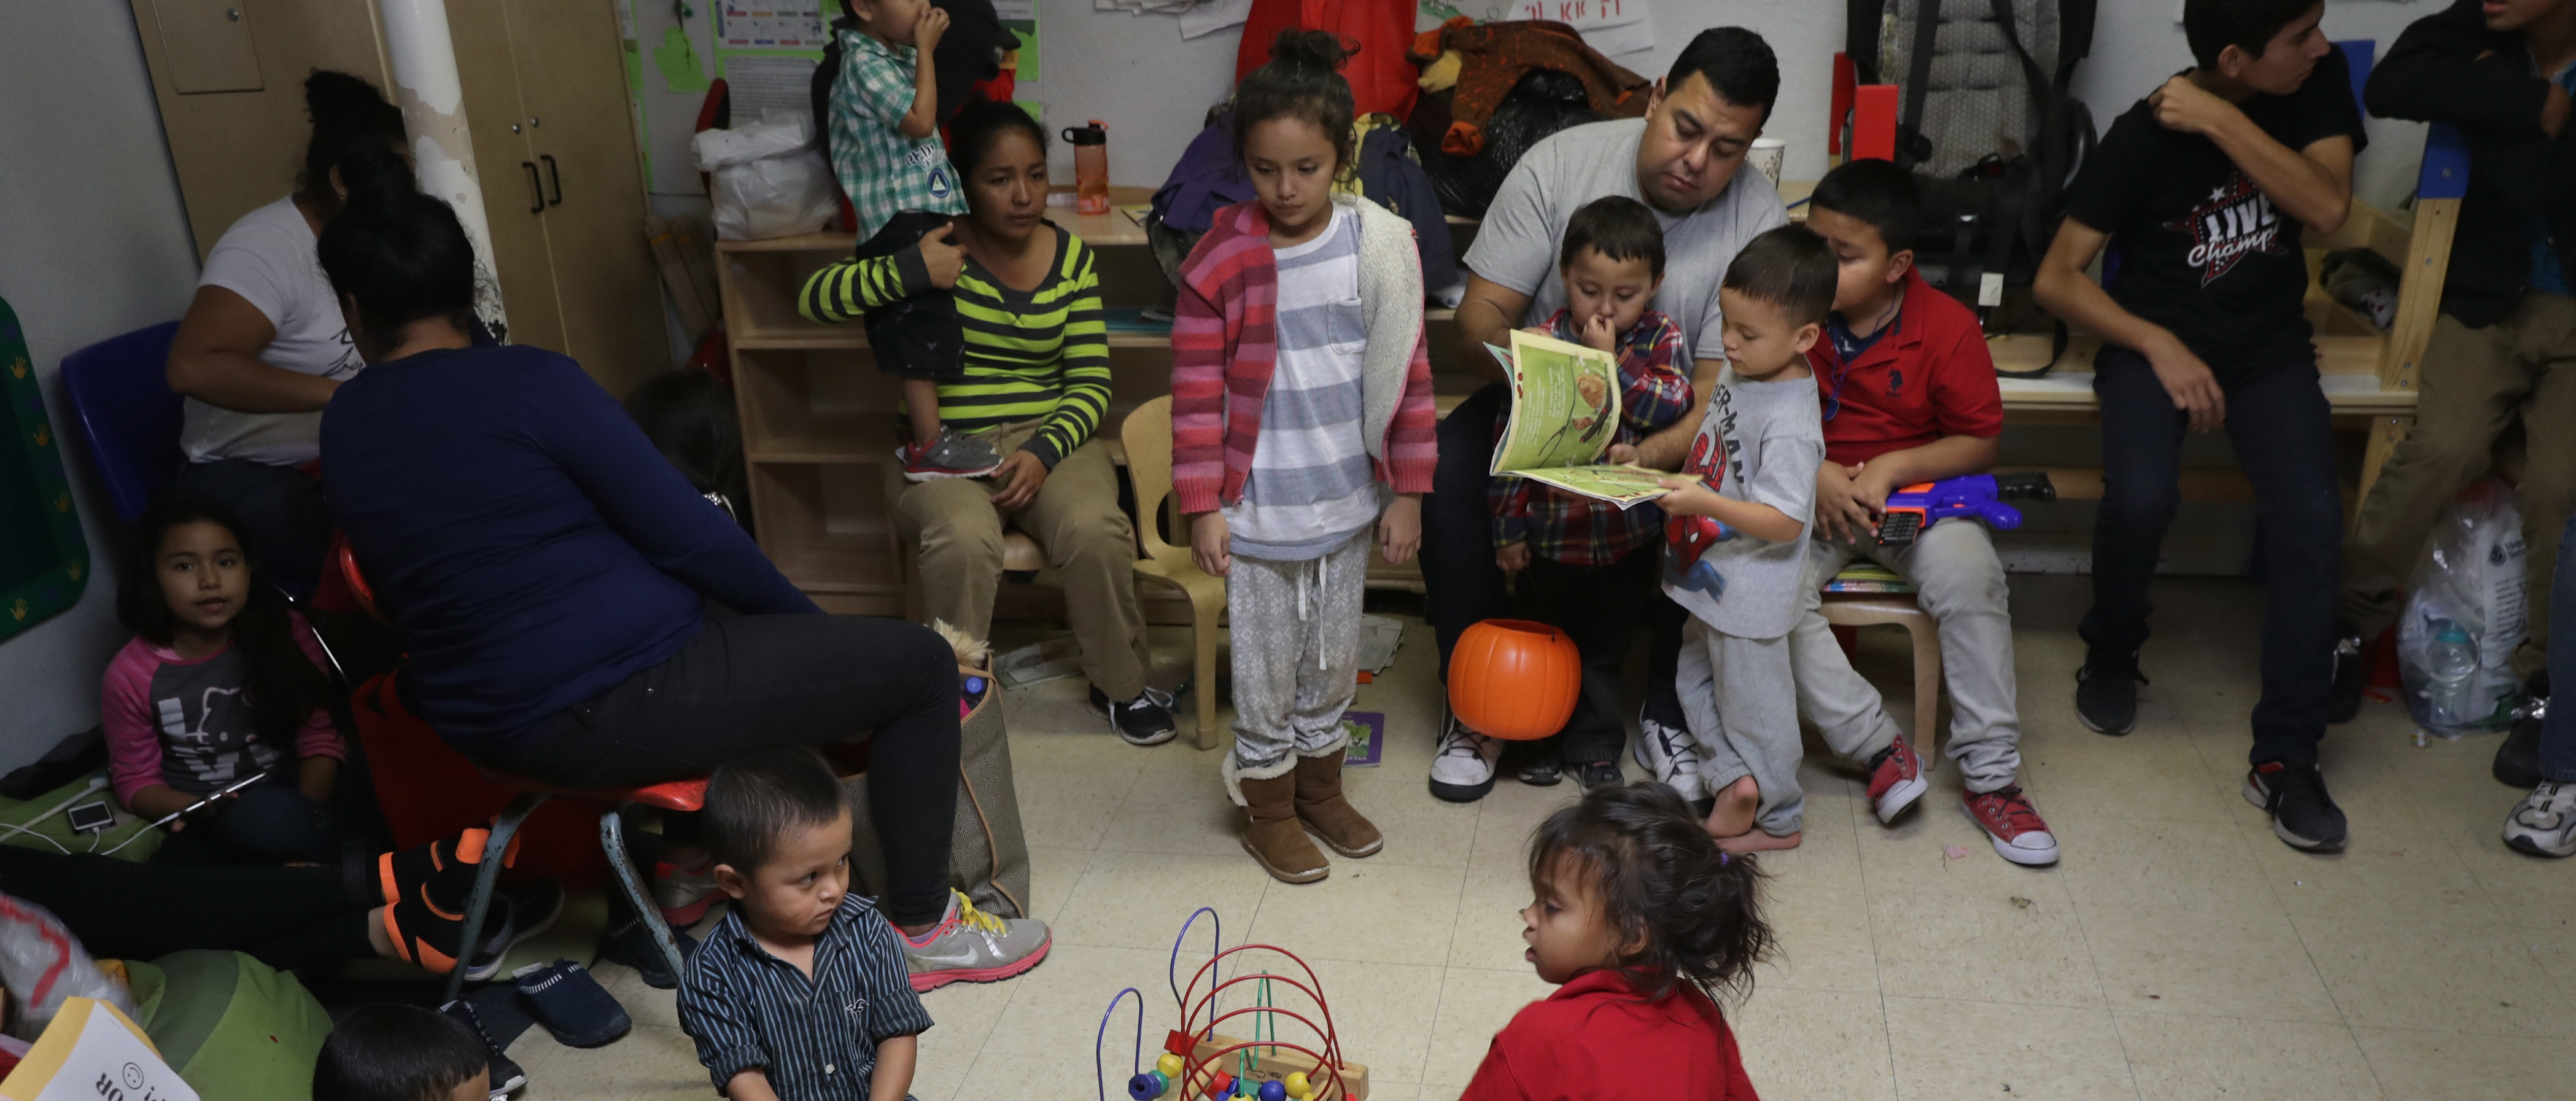 MCALLEN, TX - NOVEMBER 03: Immigrant children read and play at an aid center after being released from U.S. government detention on November 3, 2018 in McAllen, Texas. (Photo by John Moore/Getty Images)